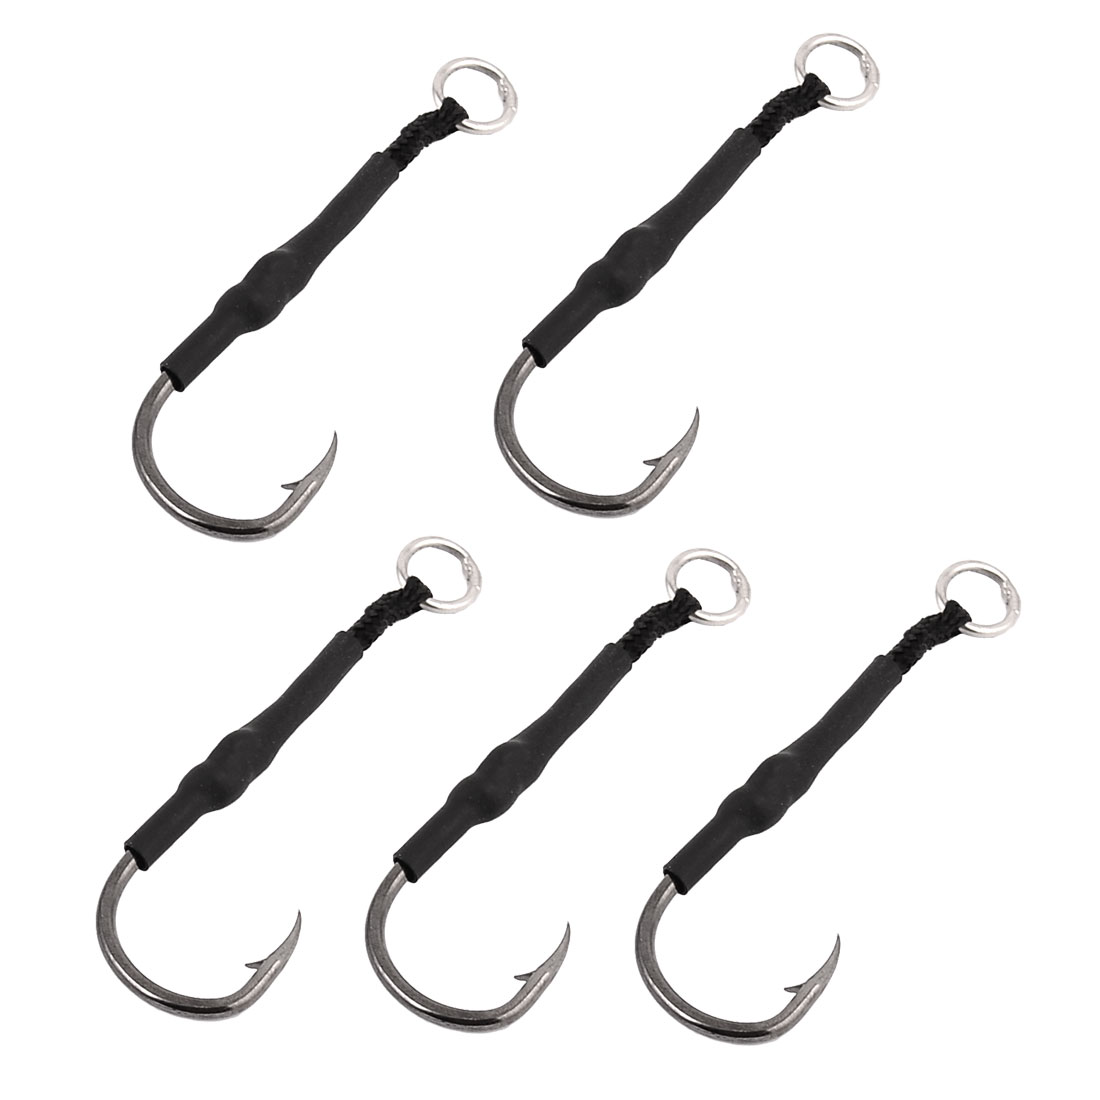 Metal J-shape Fishing Tackle Fish Angling Hook Fishhook Black 5PCS